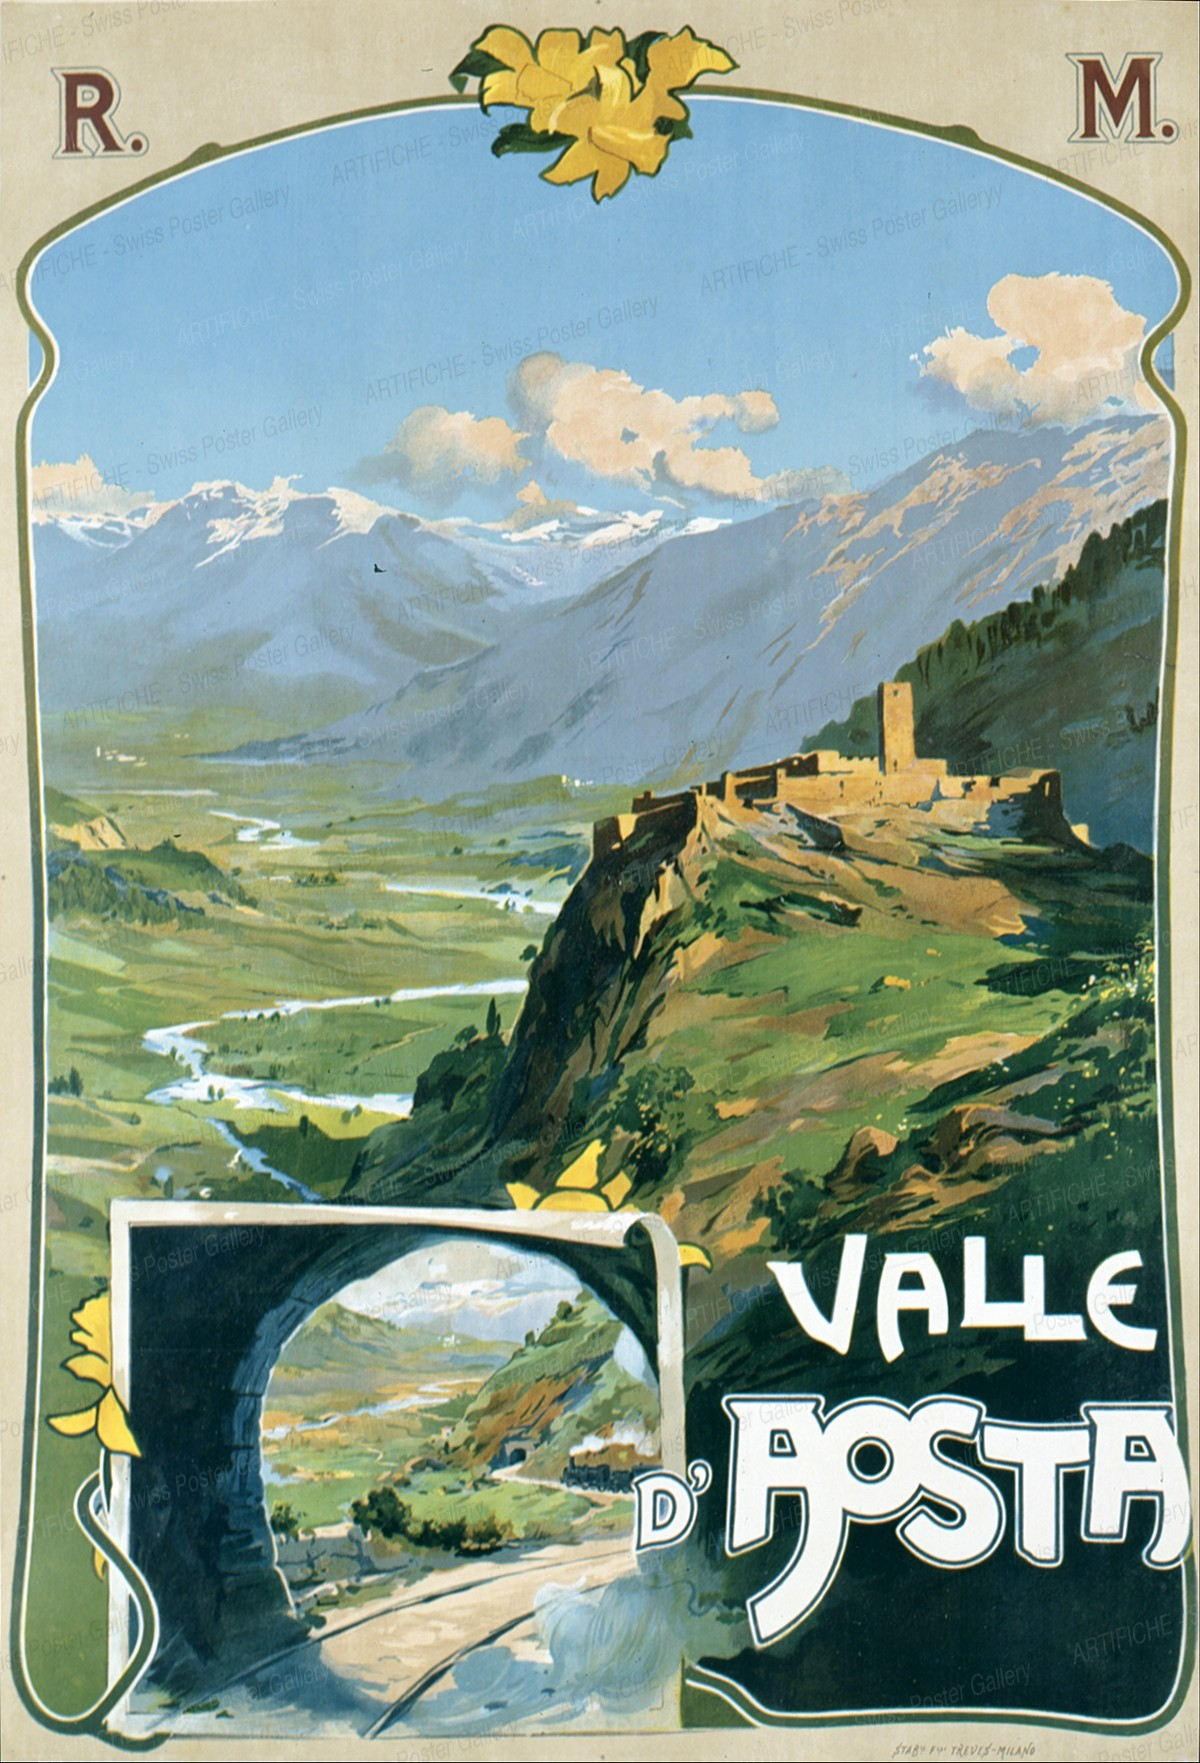 VALLE D'AOSTA, Artist unknown